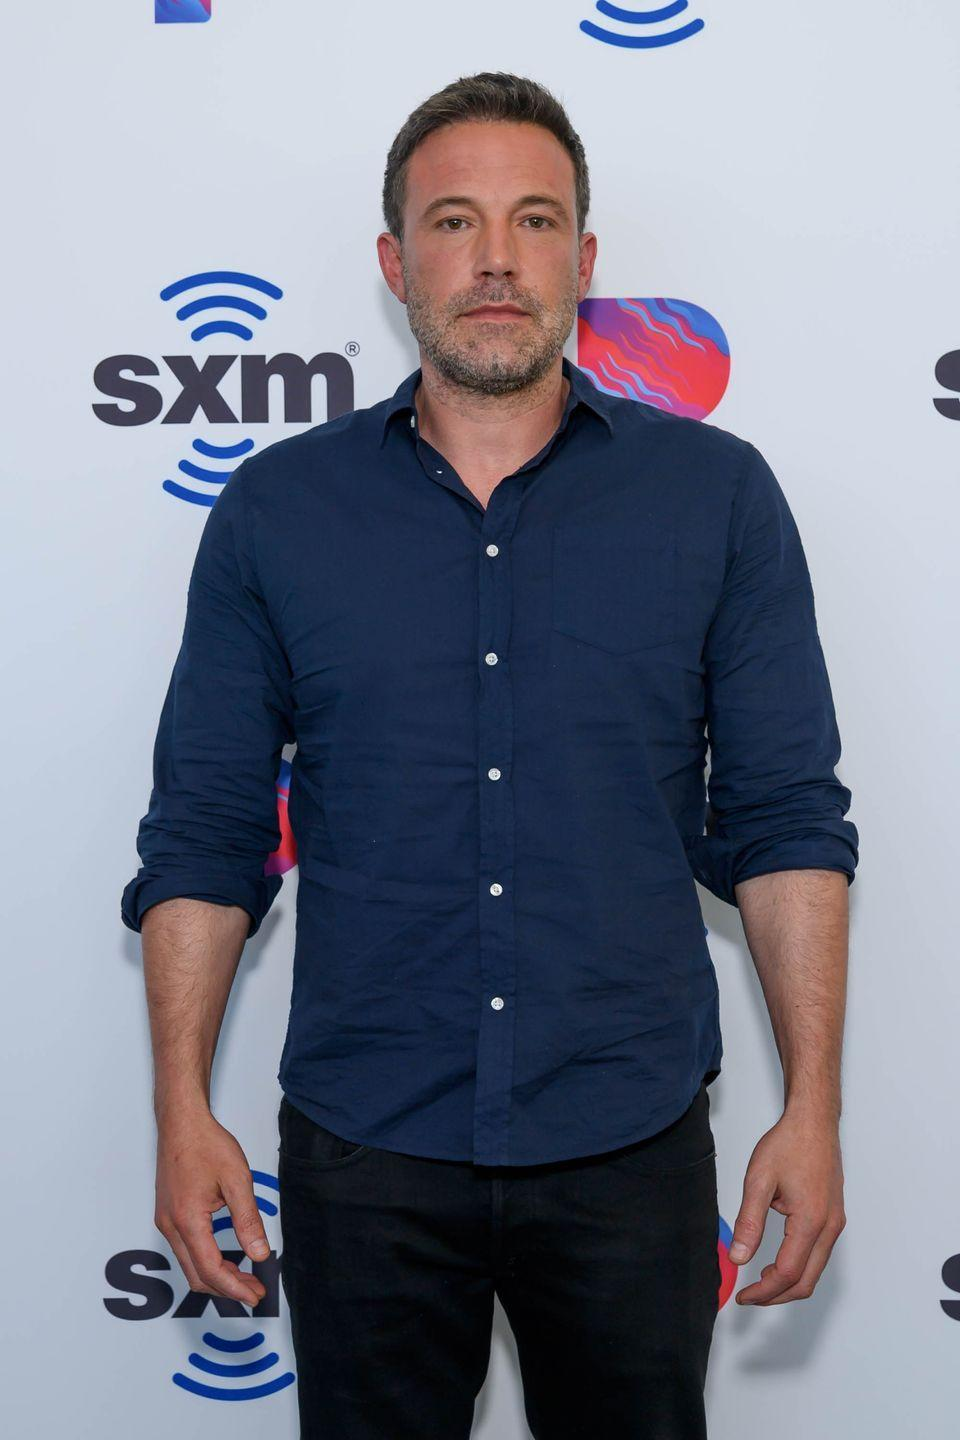 "<p><strong>Birthday: </strong>Augus 15 </p><p><strong>Age Turning: </strong>48</p><p>Since the start of quarantine, actor Ben Affleck has been spotted multiple times with his <a href=""https://www.oprahmag.com/entertainment/tv-movies/a31432565/who-is-ana-de-armas/"" rel=""nofollow noopener"" target=""_blank"" data-ylk=""slk:girlfriend Ana de Armas"" class=""link rapid-noclick-resp"">girlfriend Ana de Armas</a>.</p>"